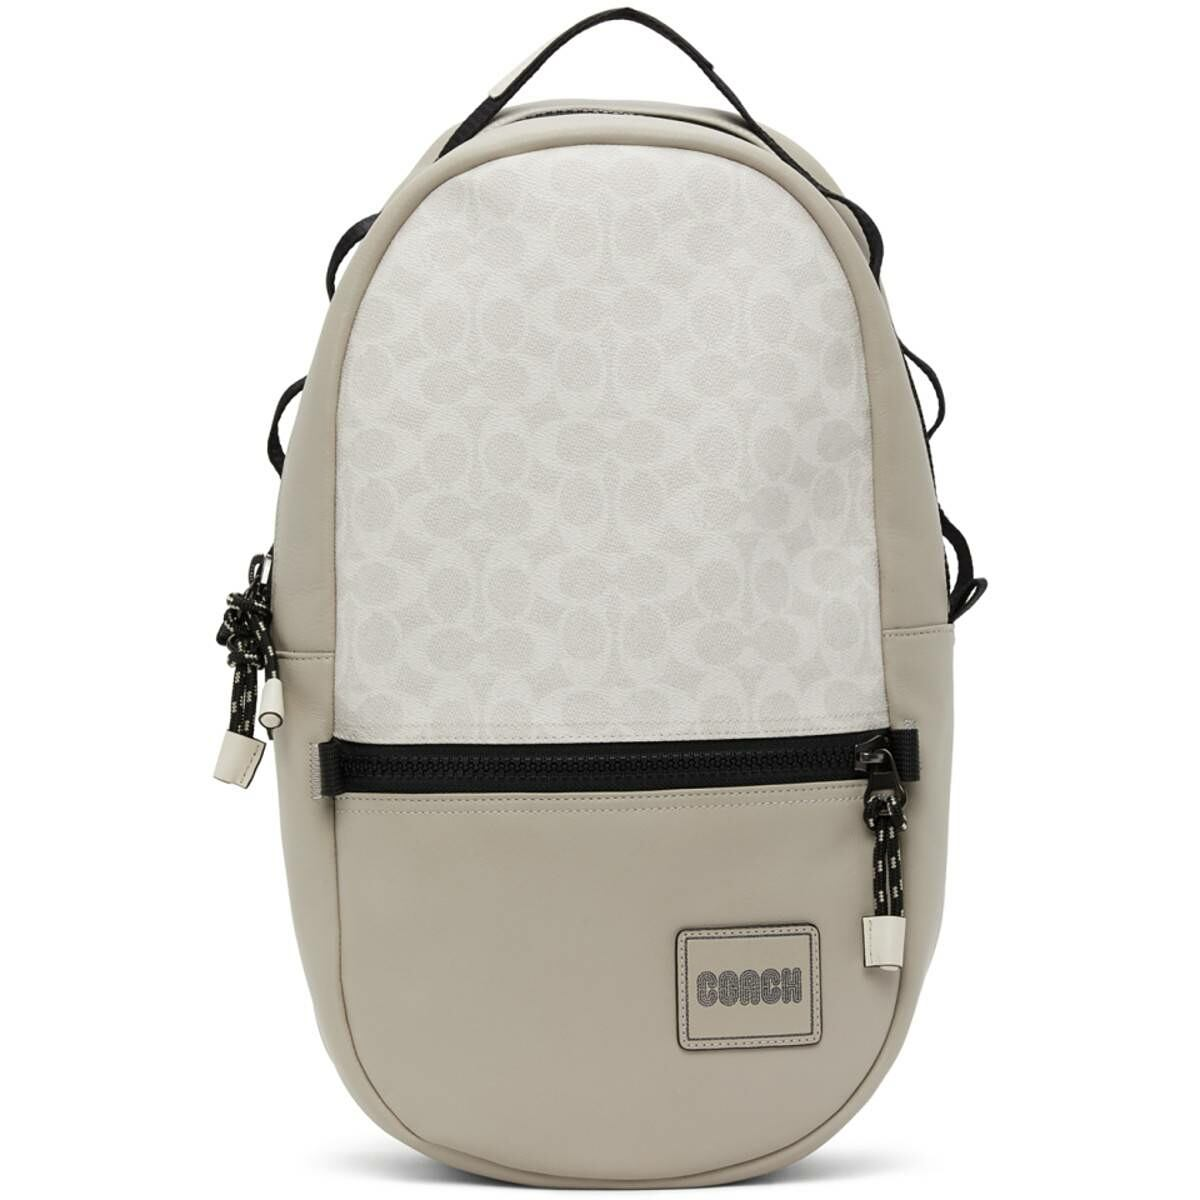 Coach 1941 Off-White Pacer Backpack Ssense USA MEN Men ACCESSORIES Mens BAGS